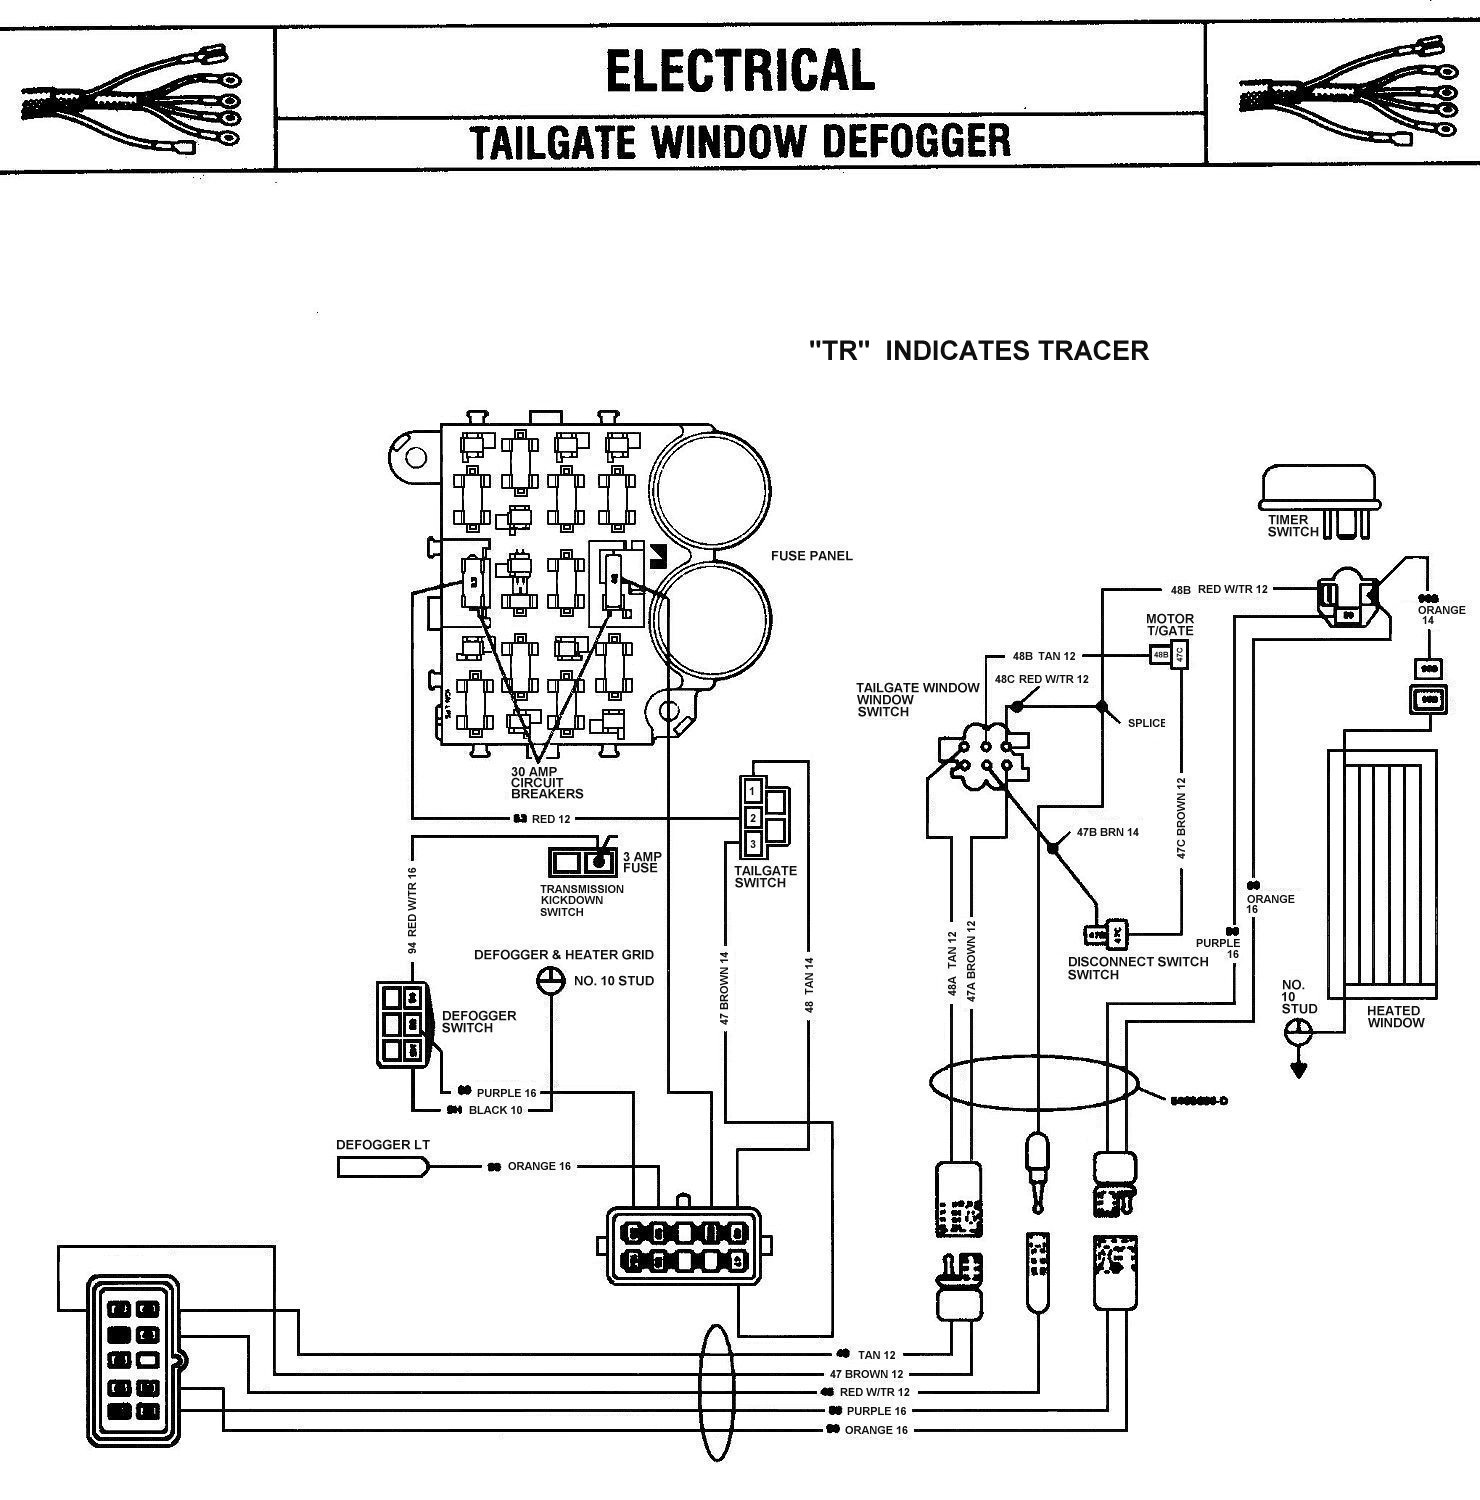 Jeep Cj5 Wiper Wiring Diagram. Jeep Wiper Motor Wire Color